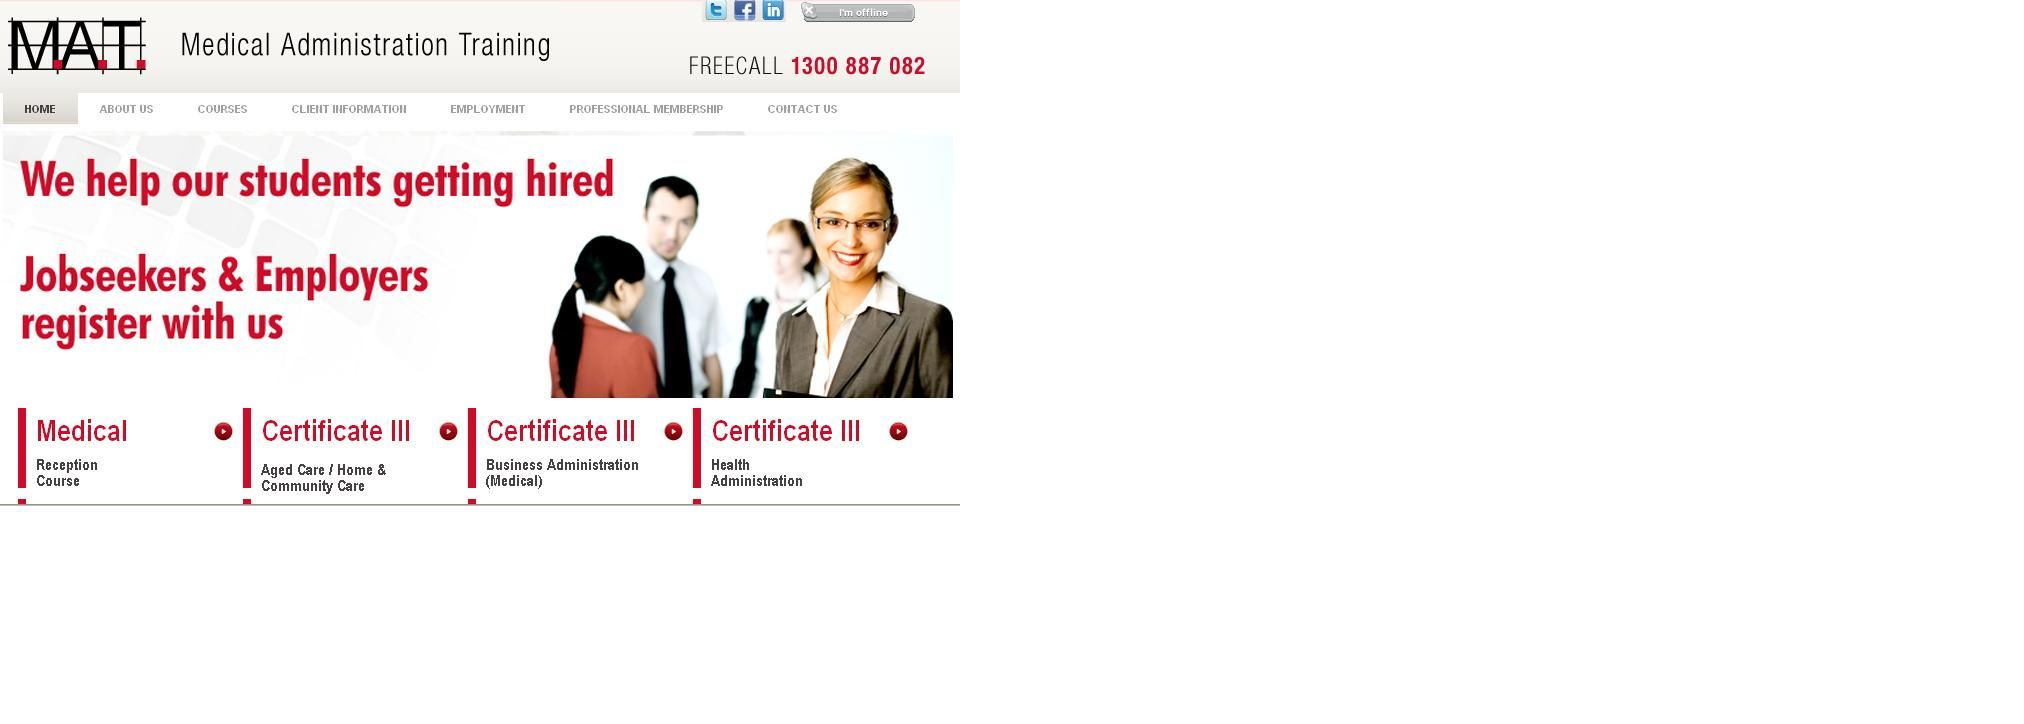 Medtrain offers many courses in medical field such as